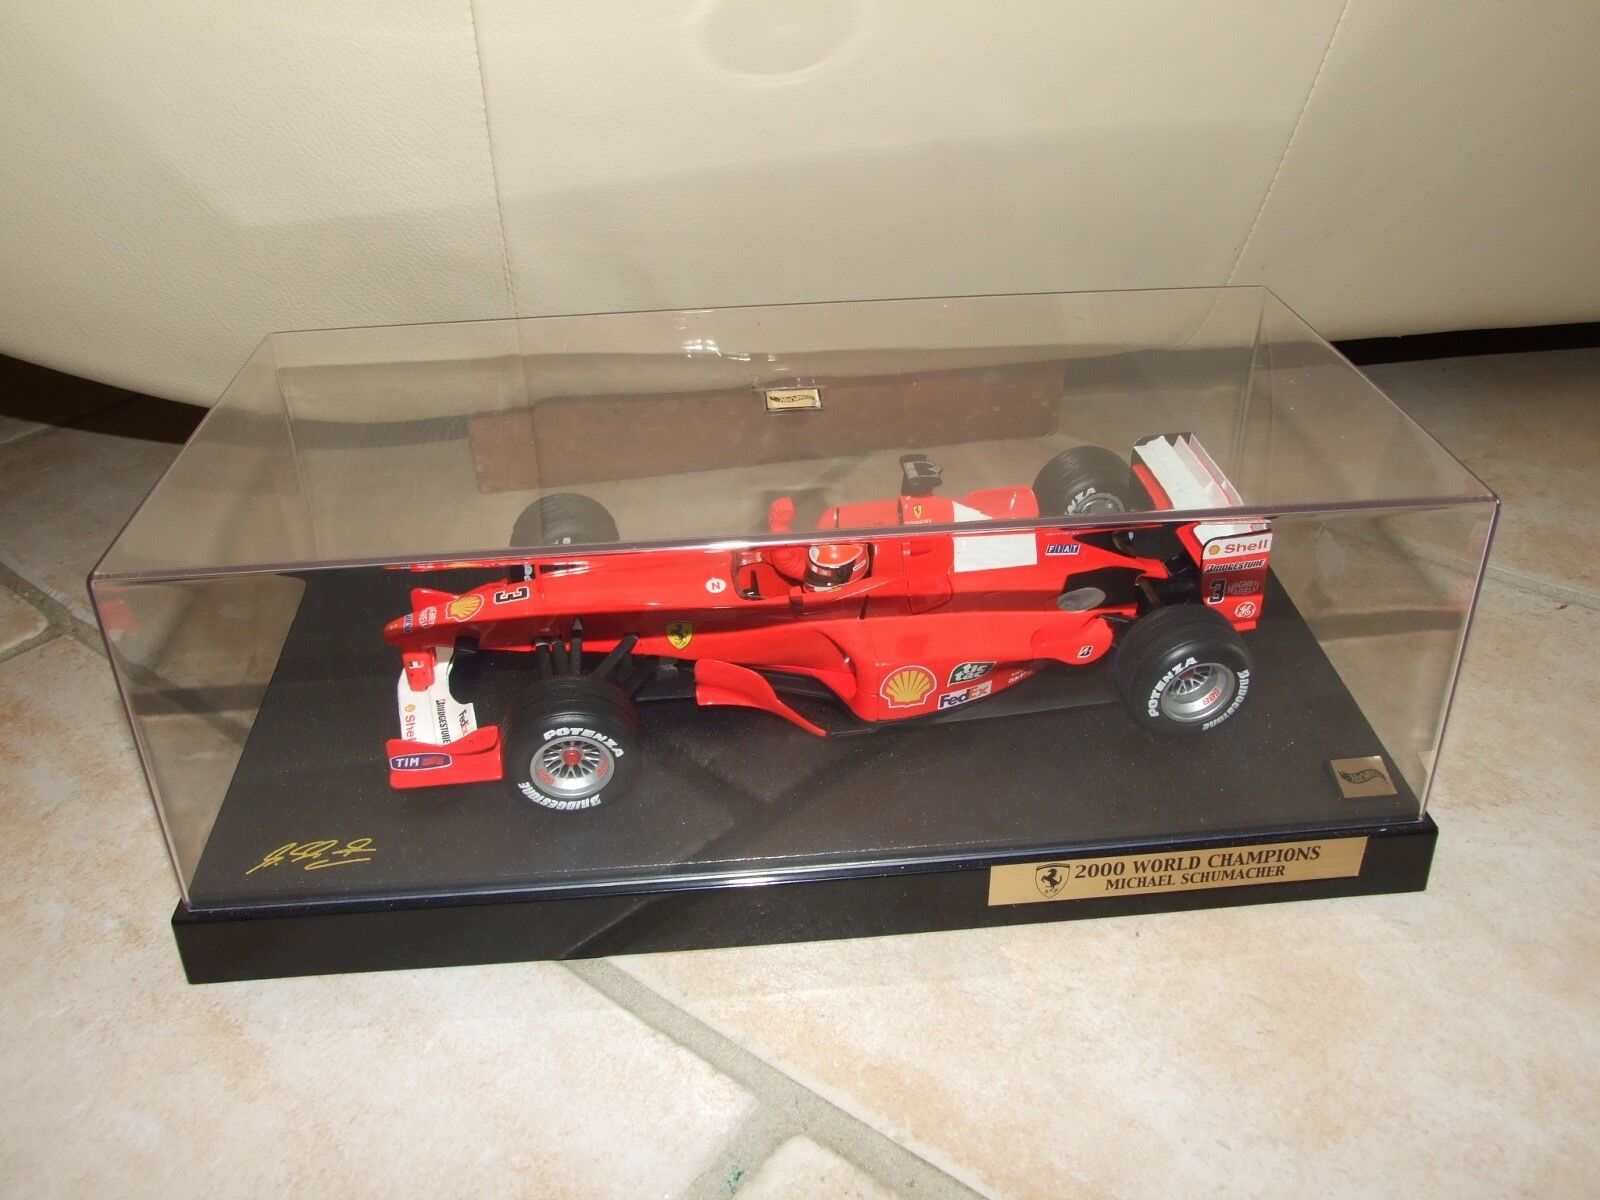 FERRARI F2000 2000 M. SCHUMACHER HOTWHEELS 1 18 World Champion